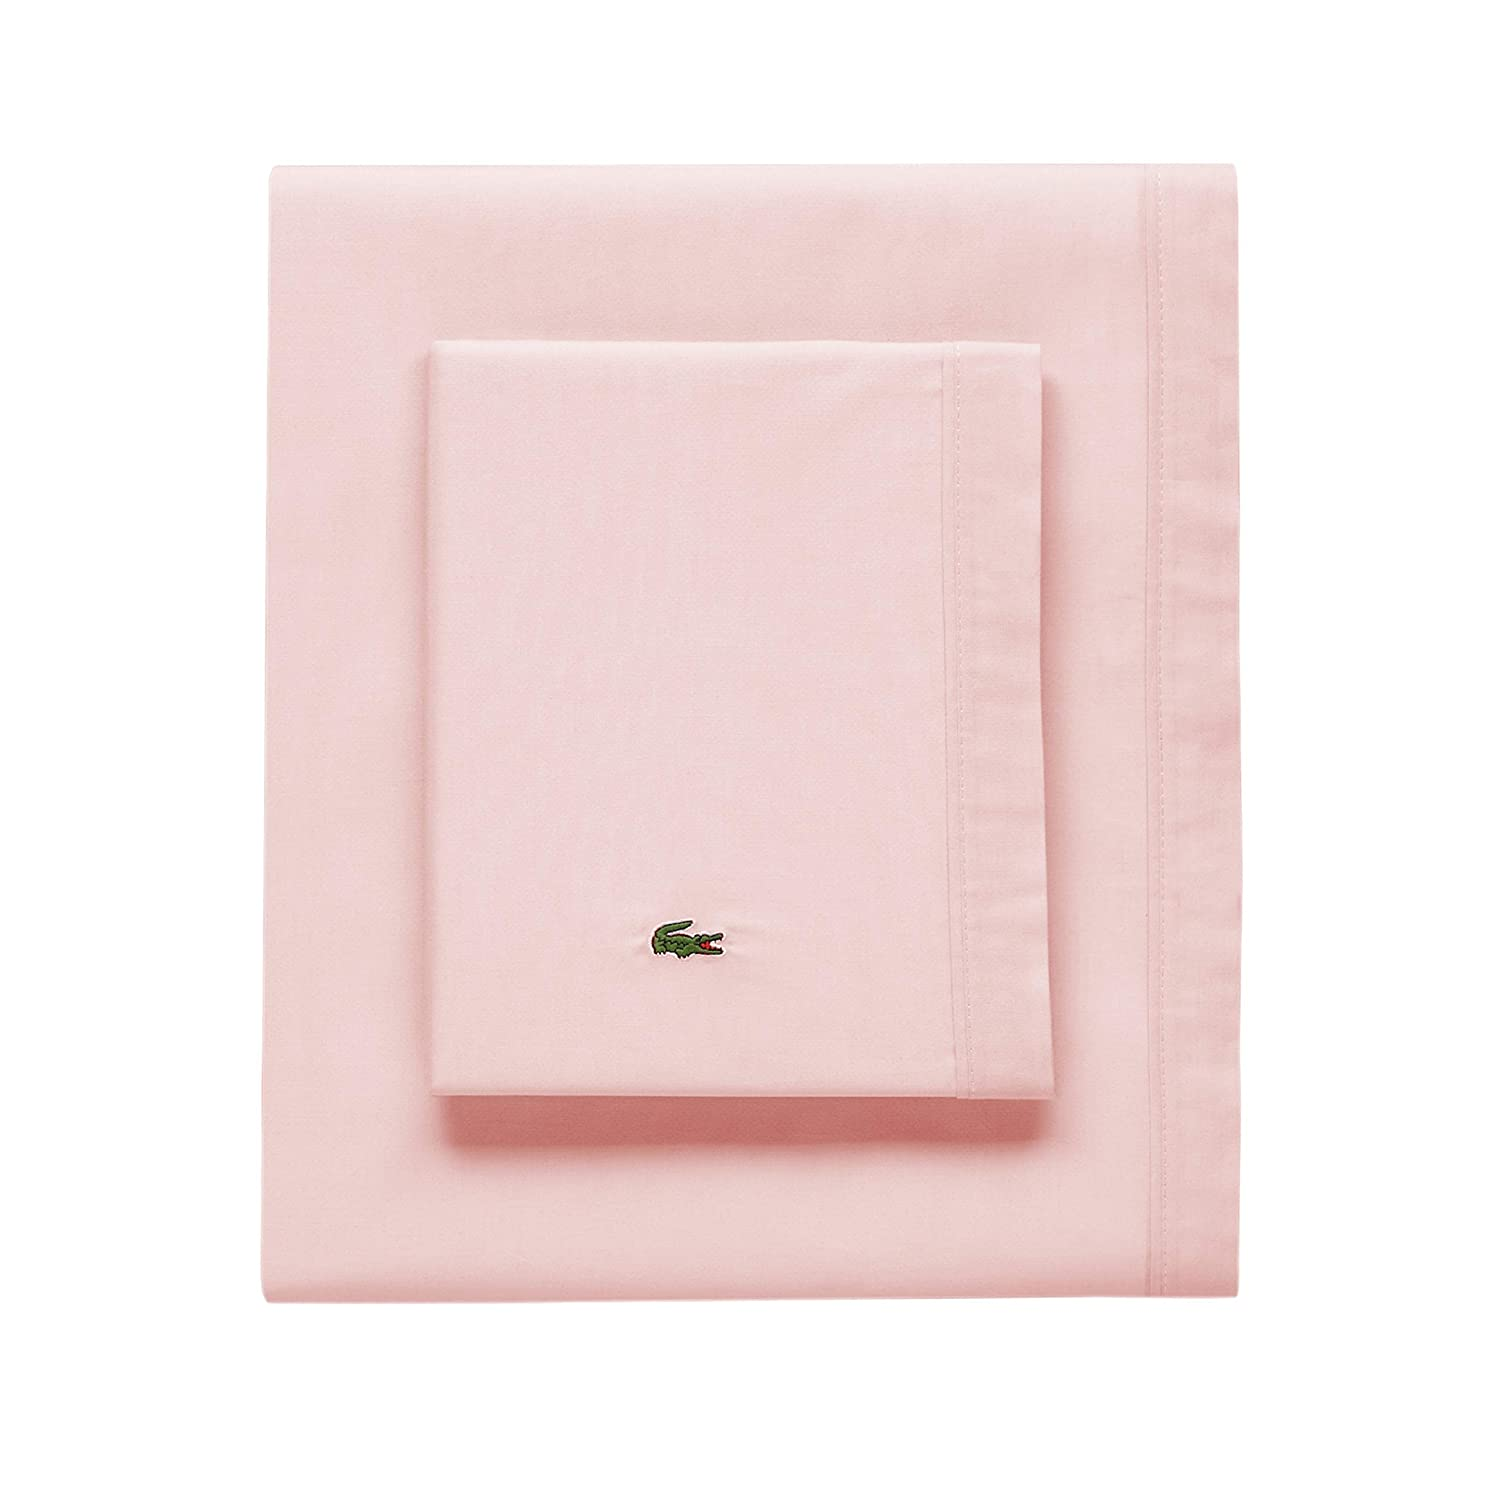 Lacoste 100% Cotton Percale Sheet Set, Solid, Iced Pink, Twin Extra Long